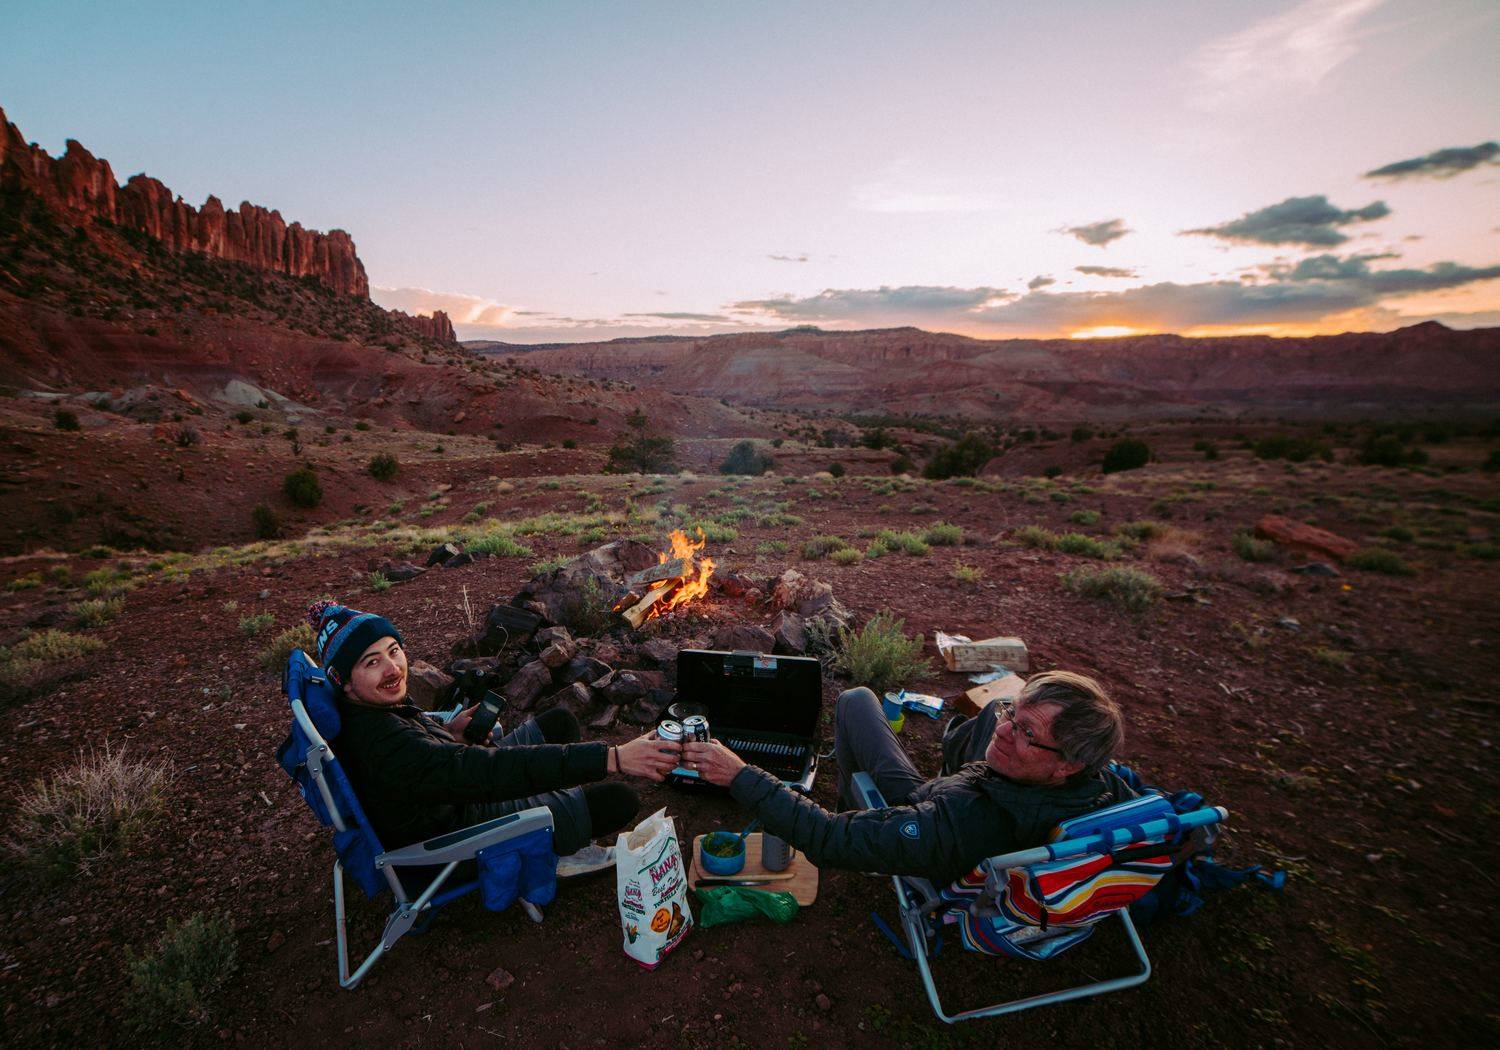 Spending time with friends outdoors is easier when you don't have to convince anyone to sit on the ground.   Photo by Robson Hatsukami Morgan from Unsplash.